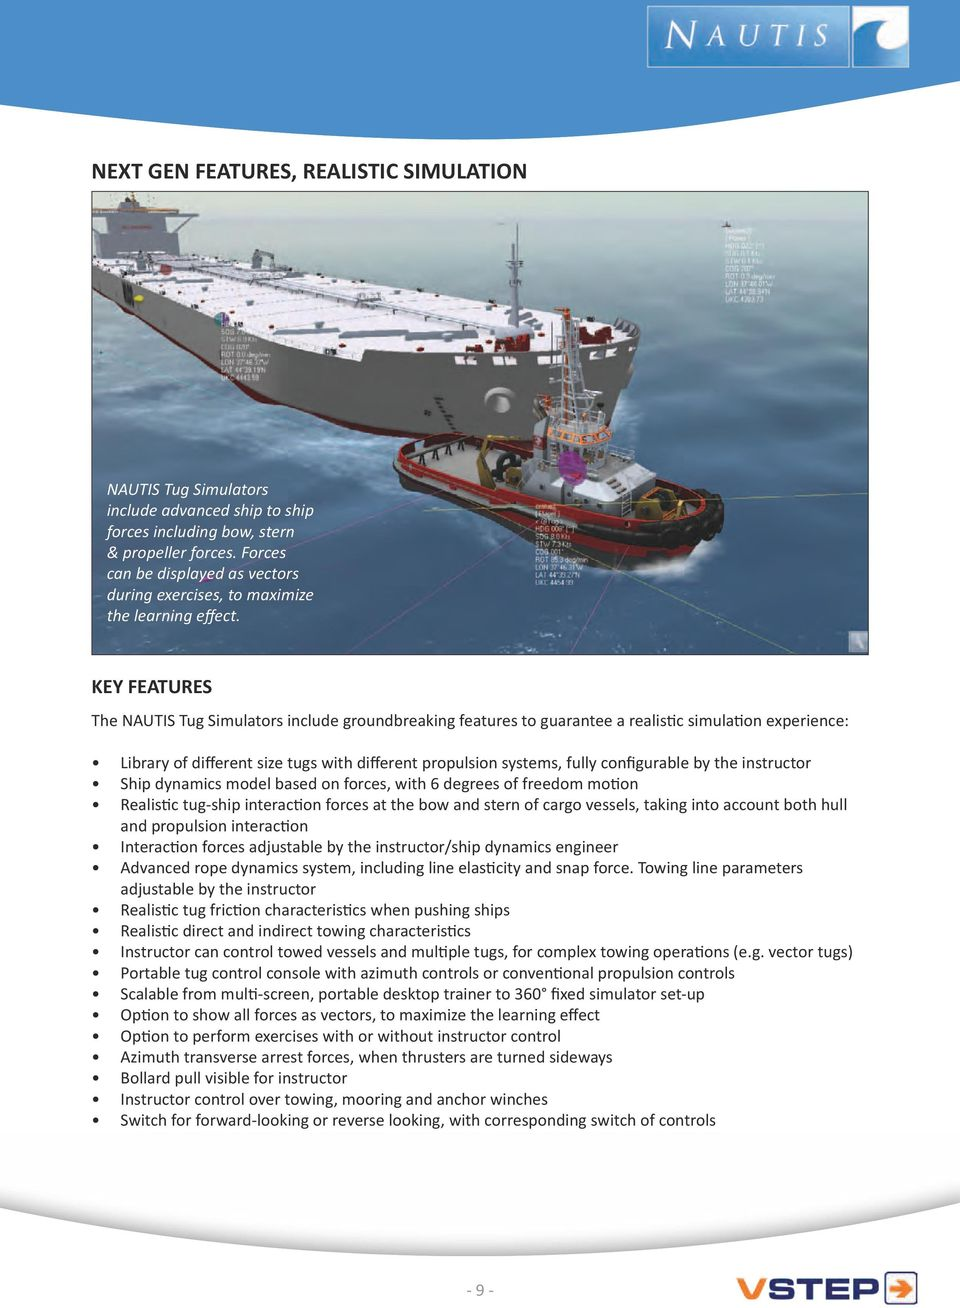 KEY FEATURES The NAUTIS Tug Simulators include groundbreaking features to guarantee a realistic simulation experience: Library of different size tugs with different propulsion systems, fully